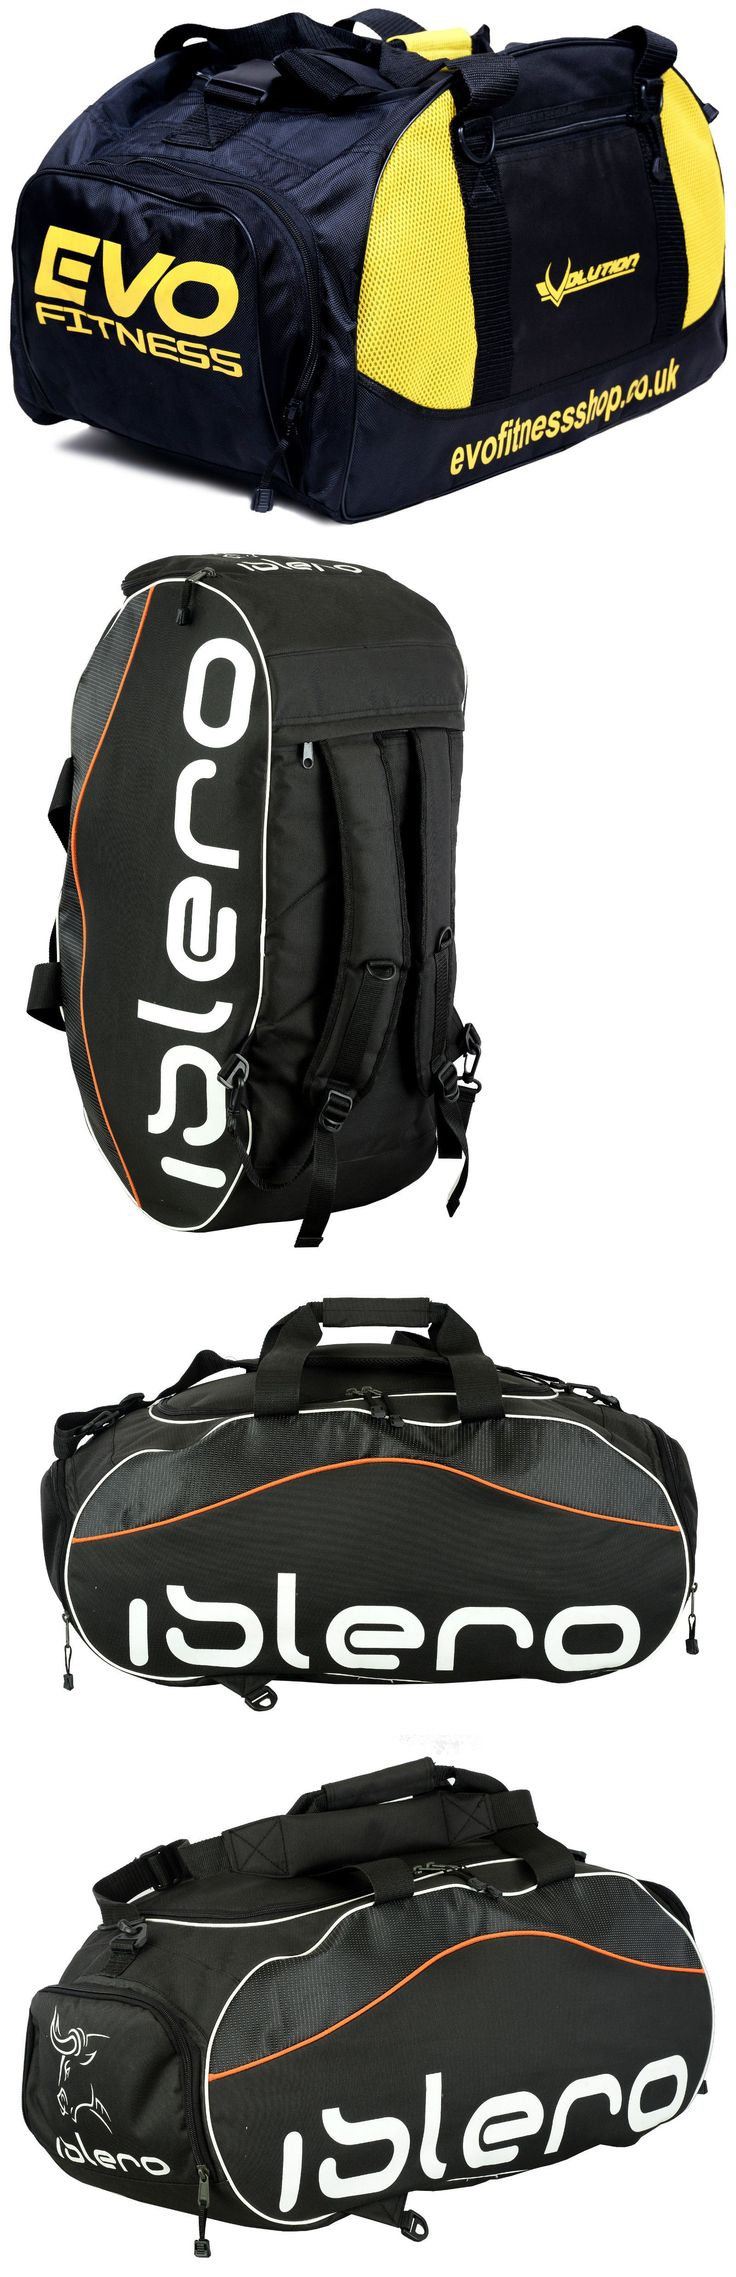 Gym Bags 68816: Evo Gym Sports Kit Bag Backpack Duffle Football Fitness Training Mma Boxing Bags -> BUY IT NOW ONLY: $26.99 on eBay!